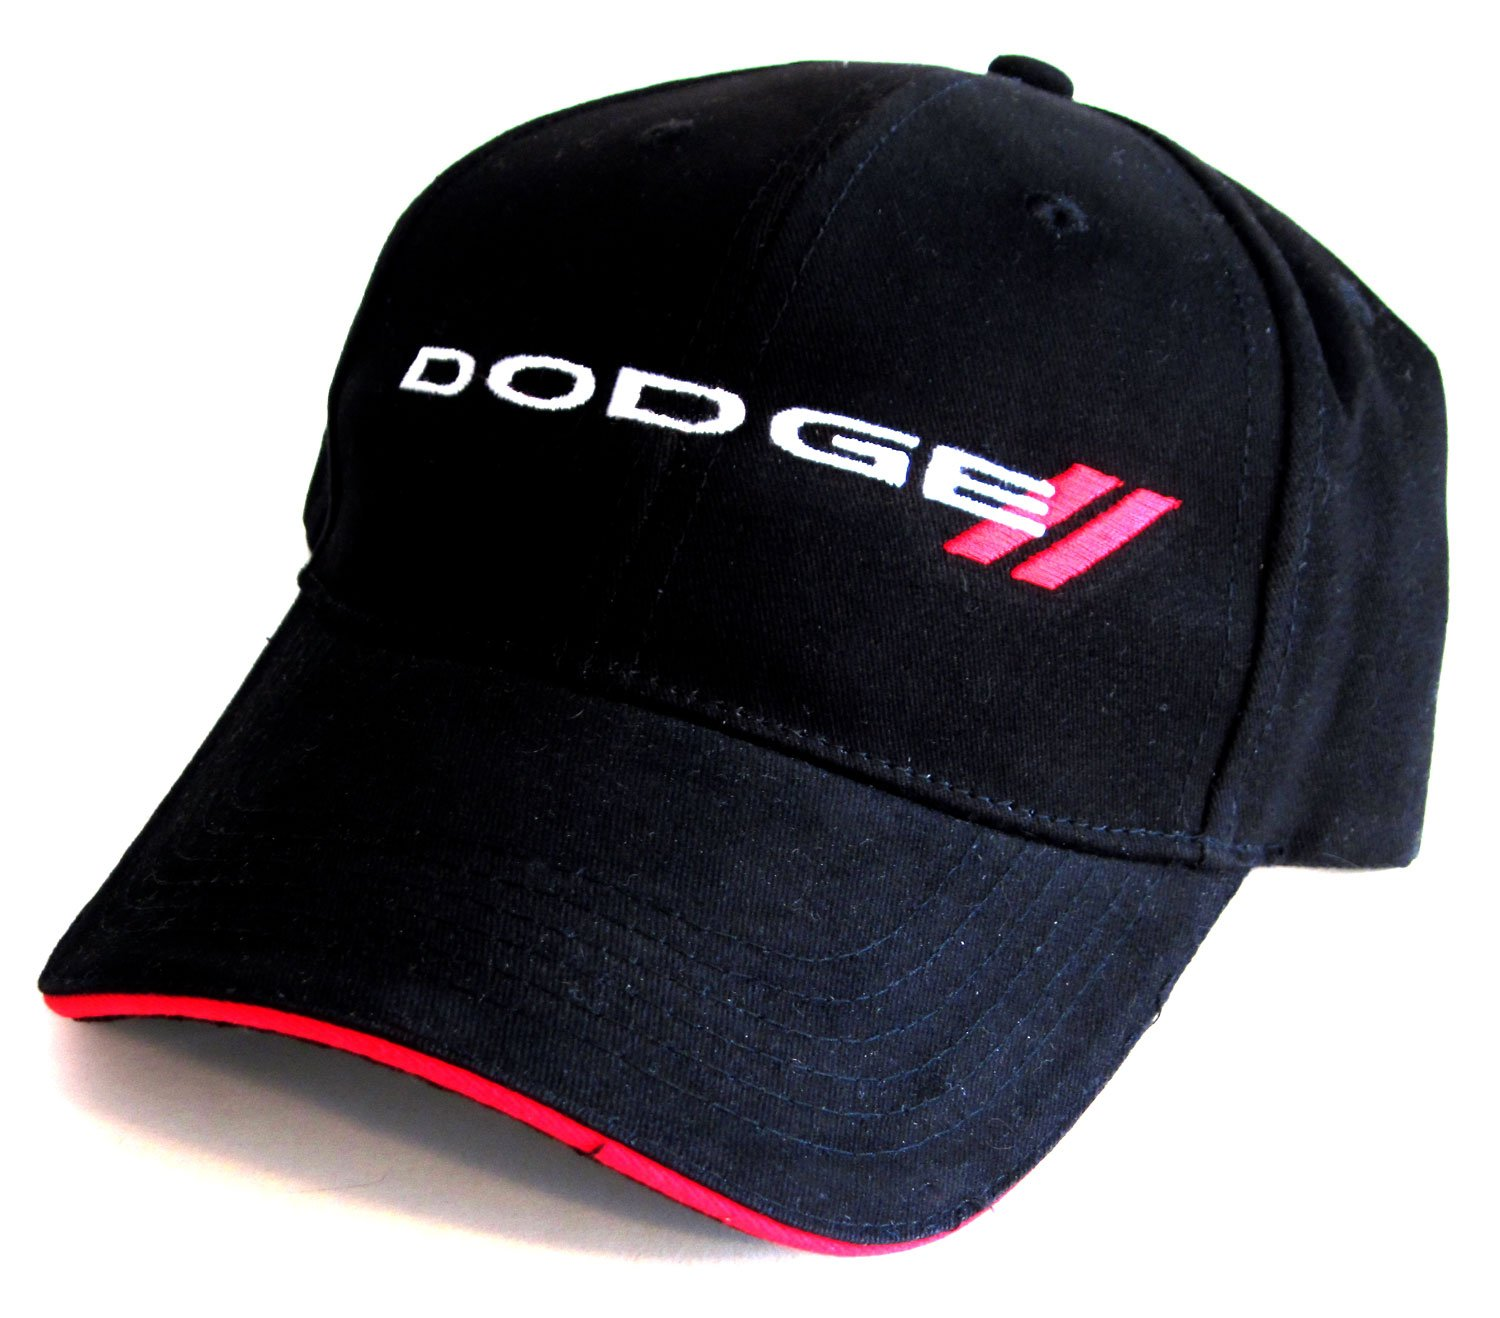 Bundle with Driving Style Decal 229-BK Gregs Automotive Dodge Logo Hat Cap in Black